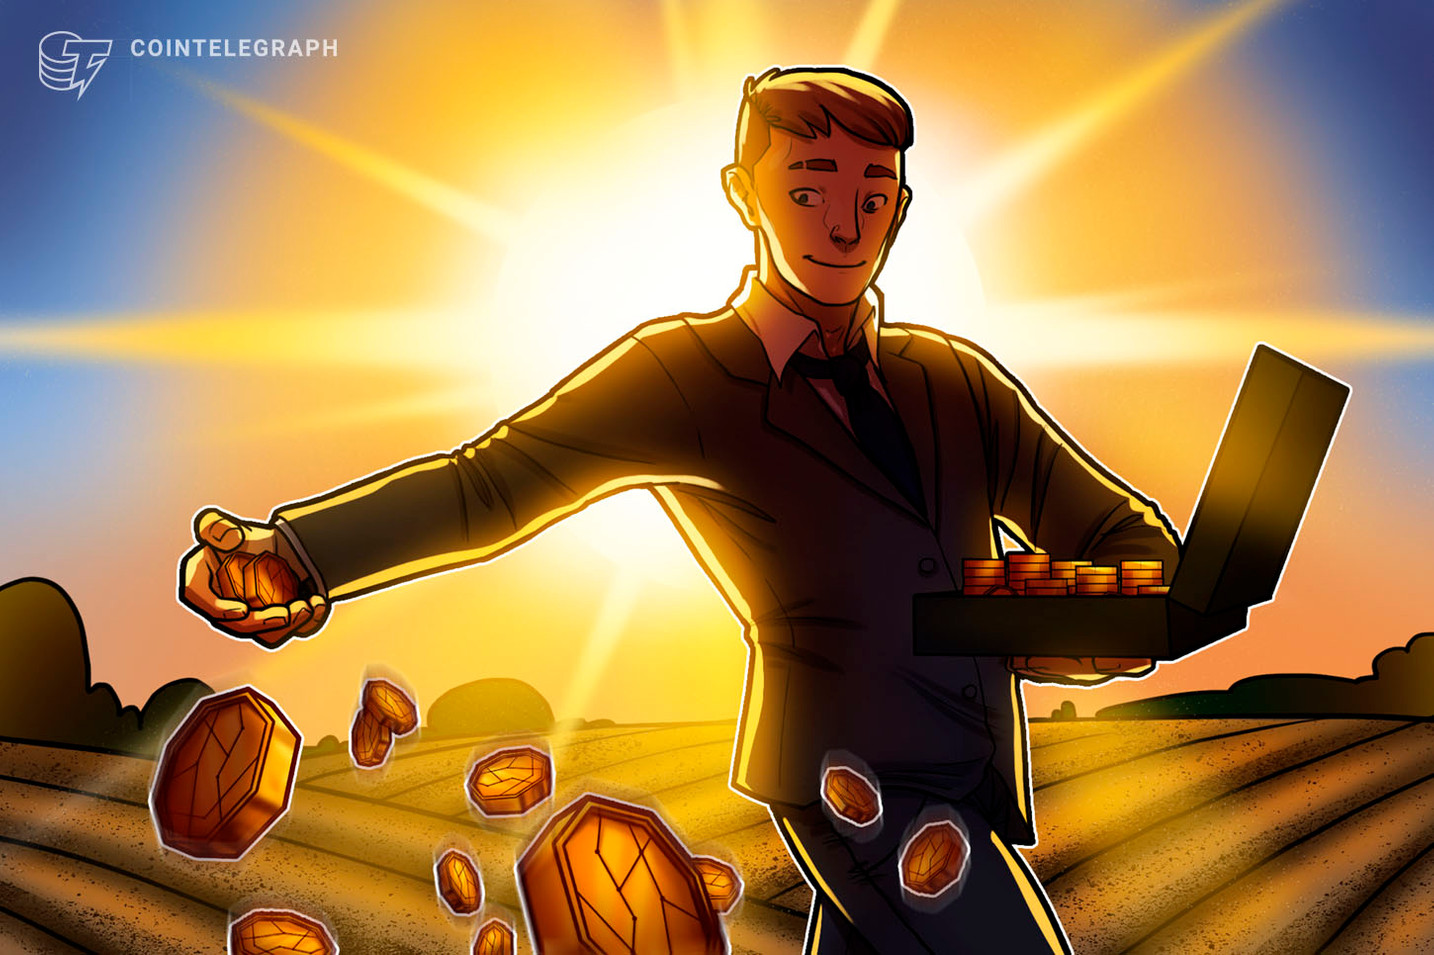 Custodian With 100K Users Has 20,00 Assets 'Ripe' for Tokenization